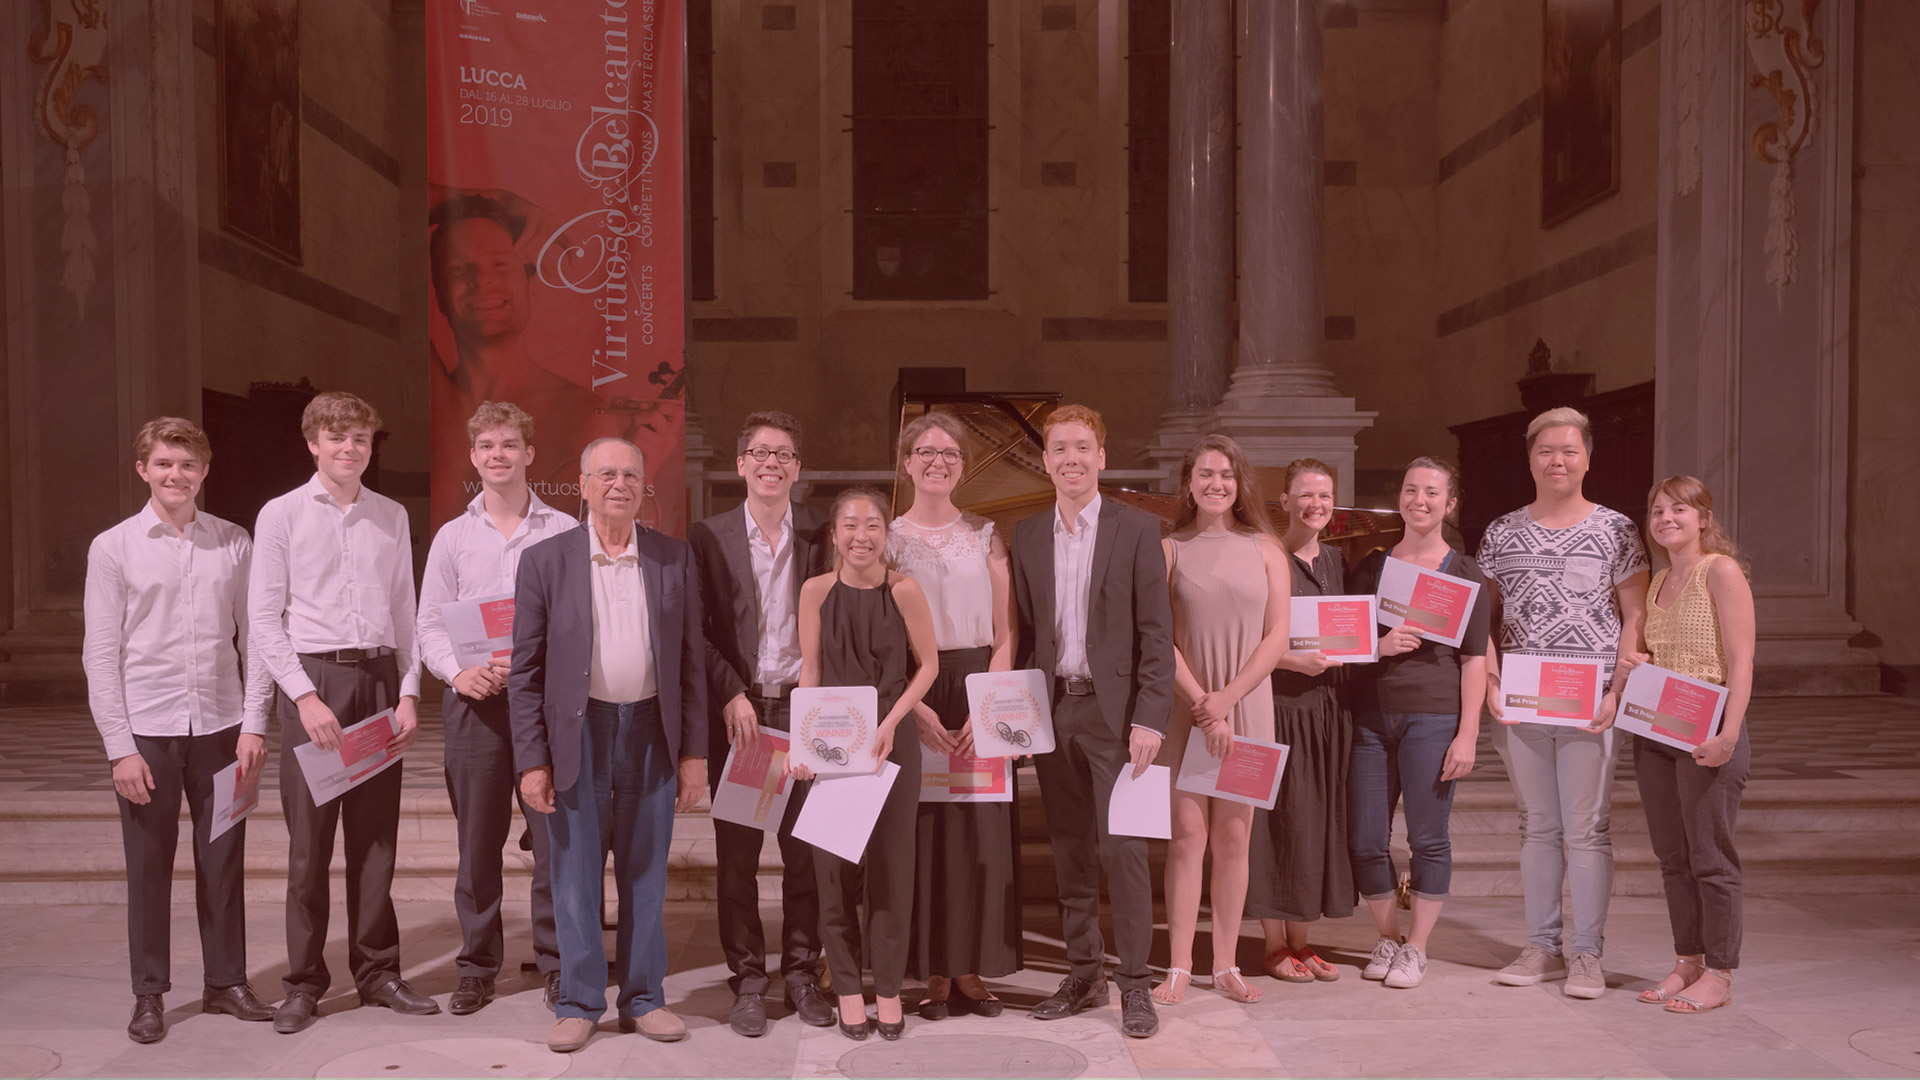 the winners of 2019 chamber orchestra competition